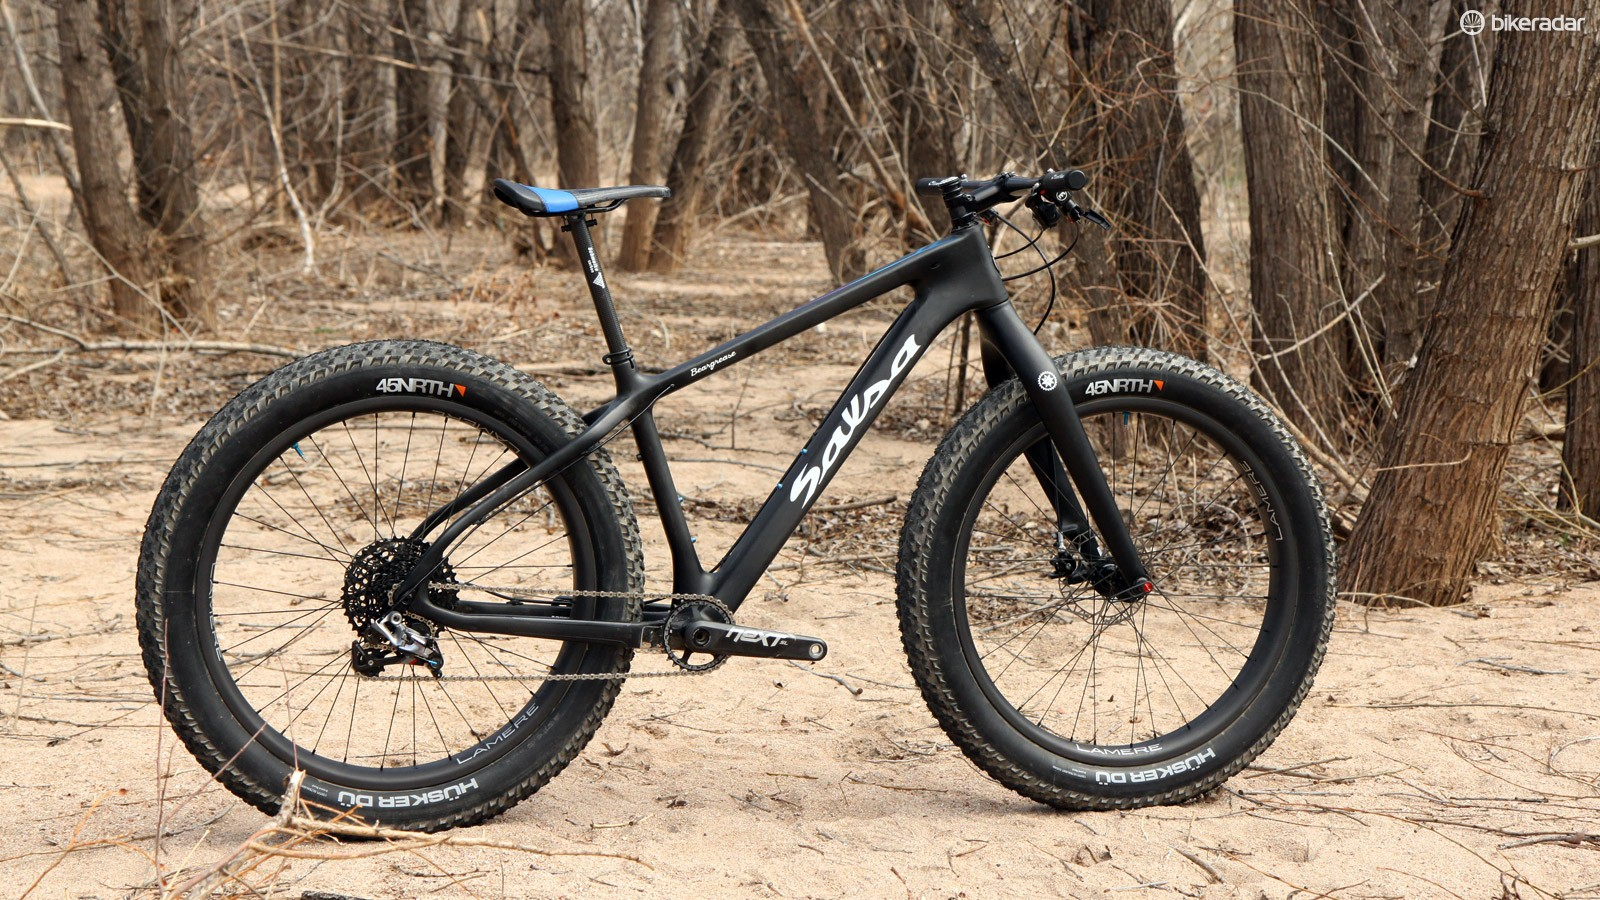 Fat bikes are generally assumed to be heavy and cumbersome beasts but the one created by Fairwheel Bikes is anything but. As shown here, it weighs a scant 9.18kg (20.24lb) - lighter than many dedicated XC race rigs